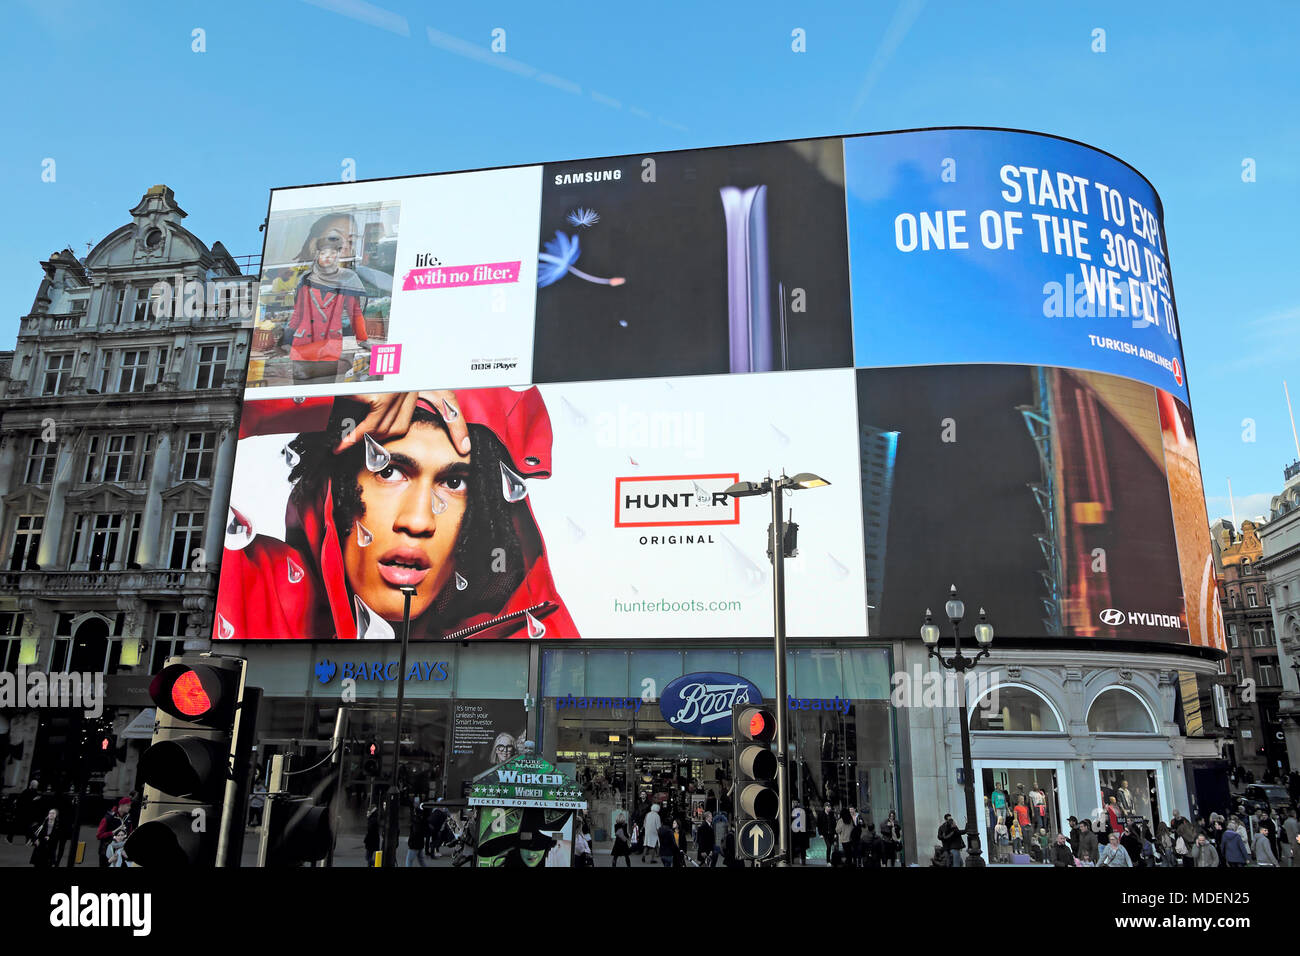 Hunter Boots advert on an electronic advertising billboard in Piccadilly Circus, London England UK   KATHY DEWITT - Stock Image